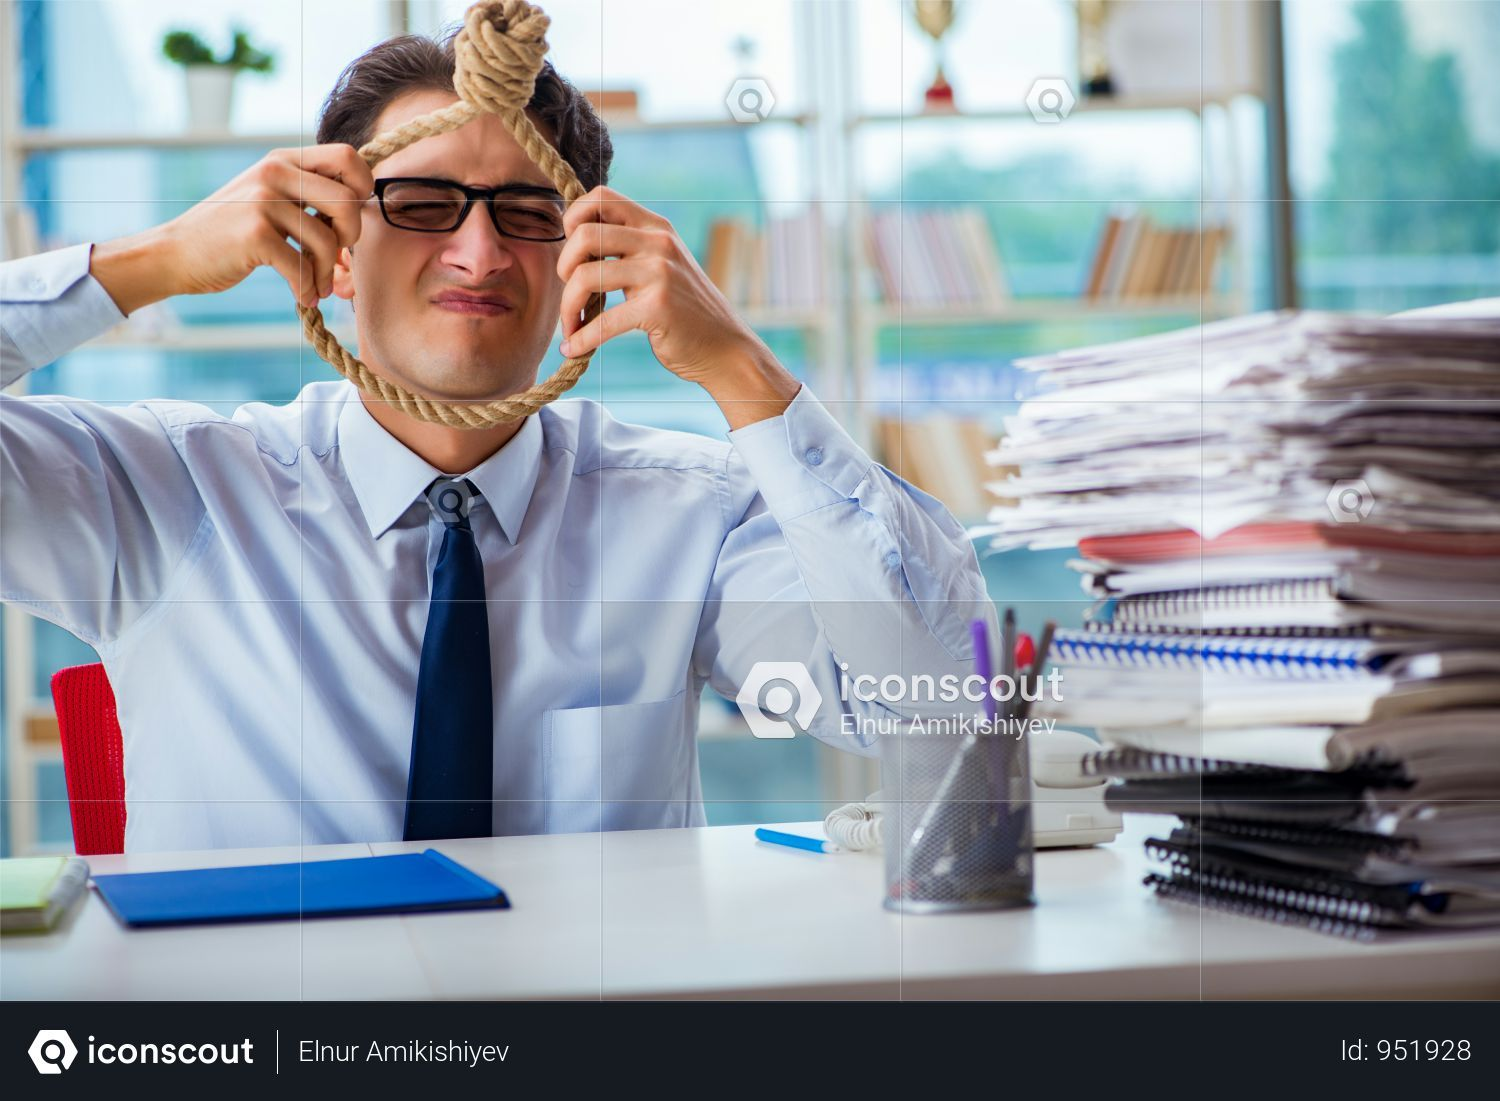 Premium Unhappy Businessman Thinking Of Hanging Himself In The Office Photo Download In Png Jpg Format Business Man The Office Photo